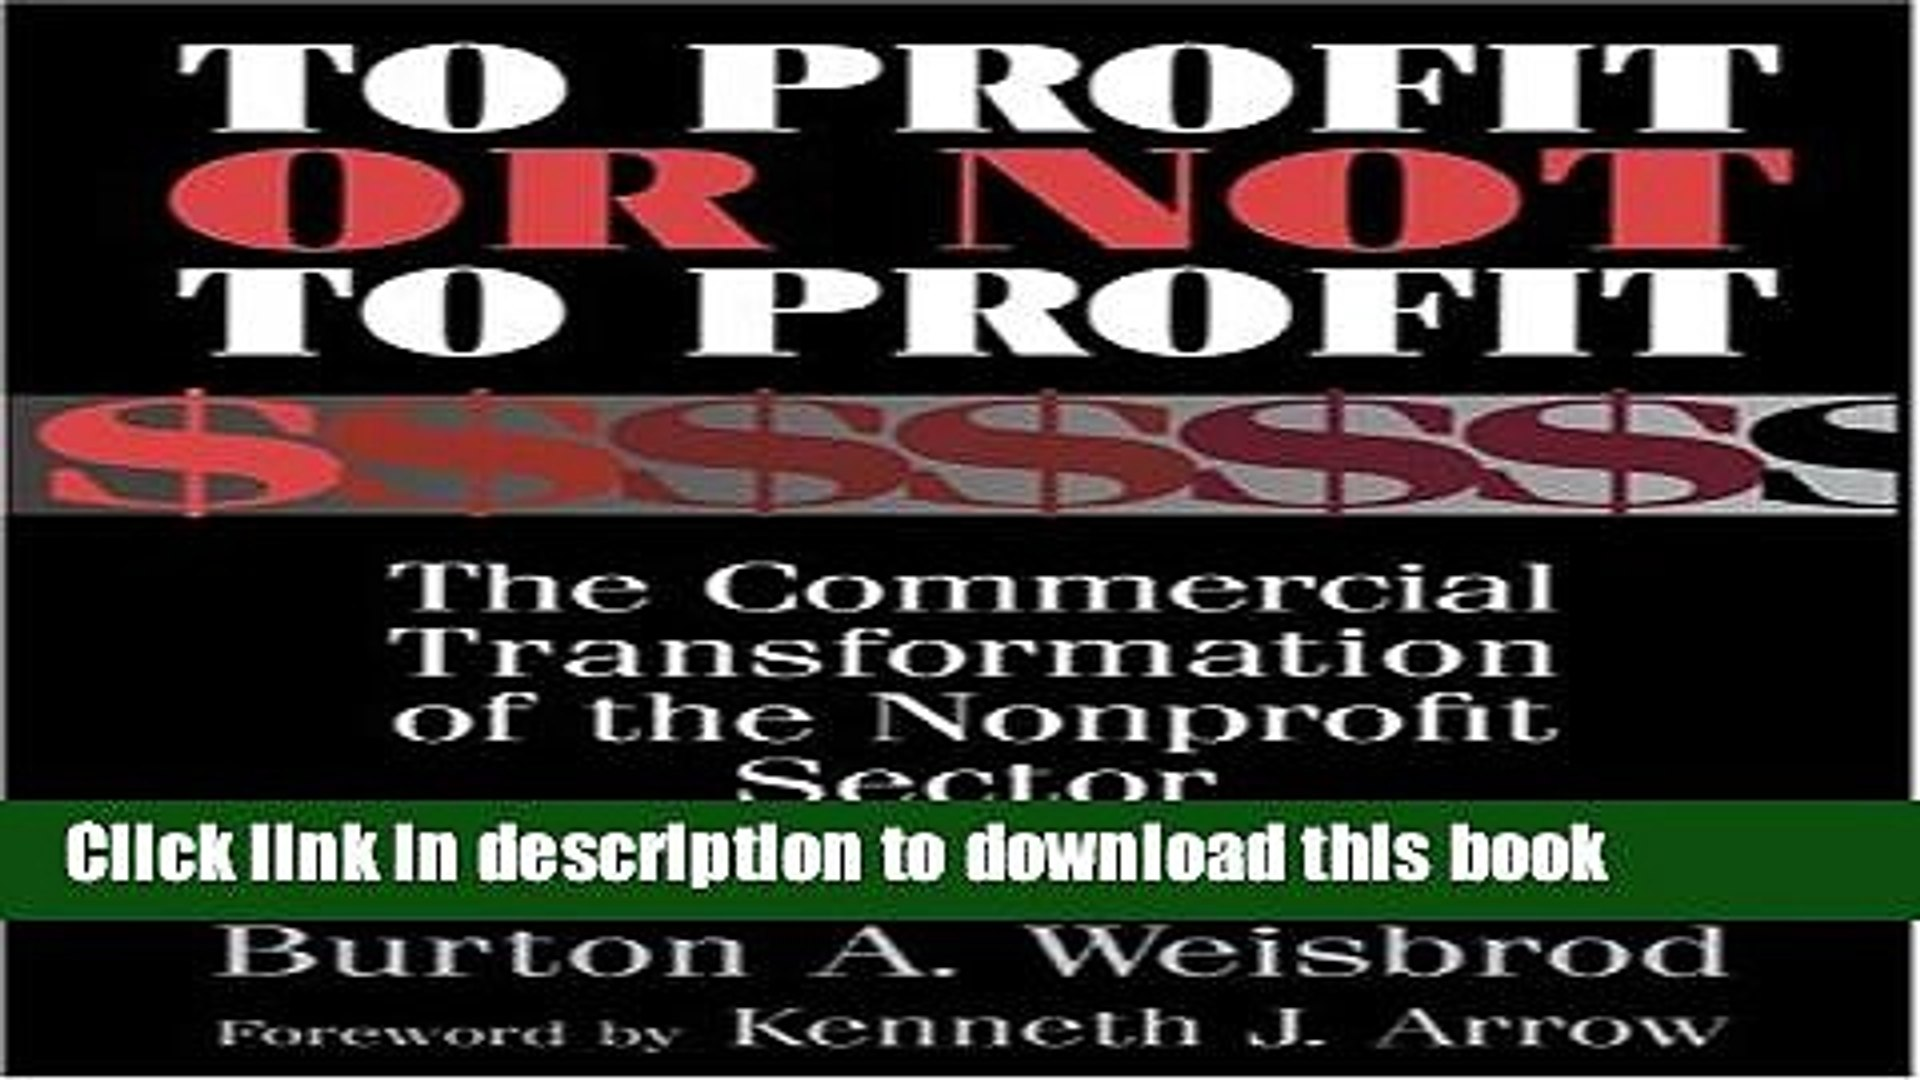 [PDF] To Profit or Not to Profit: The Commercial Transformation of the Nonprofit Sector Read Online